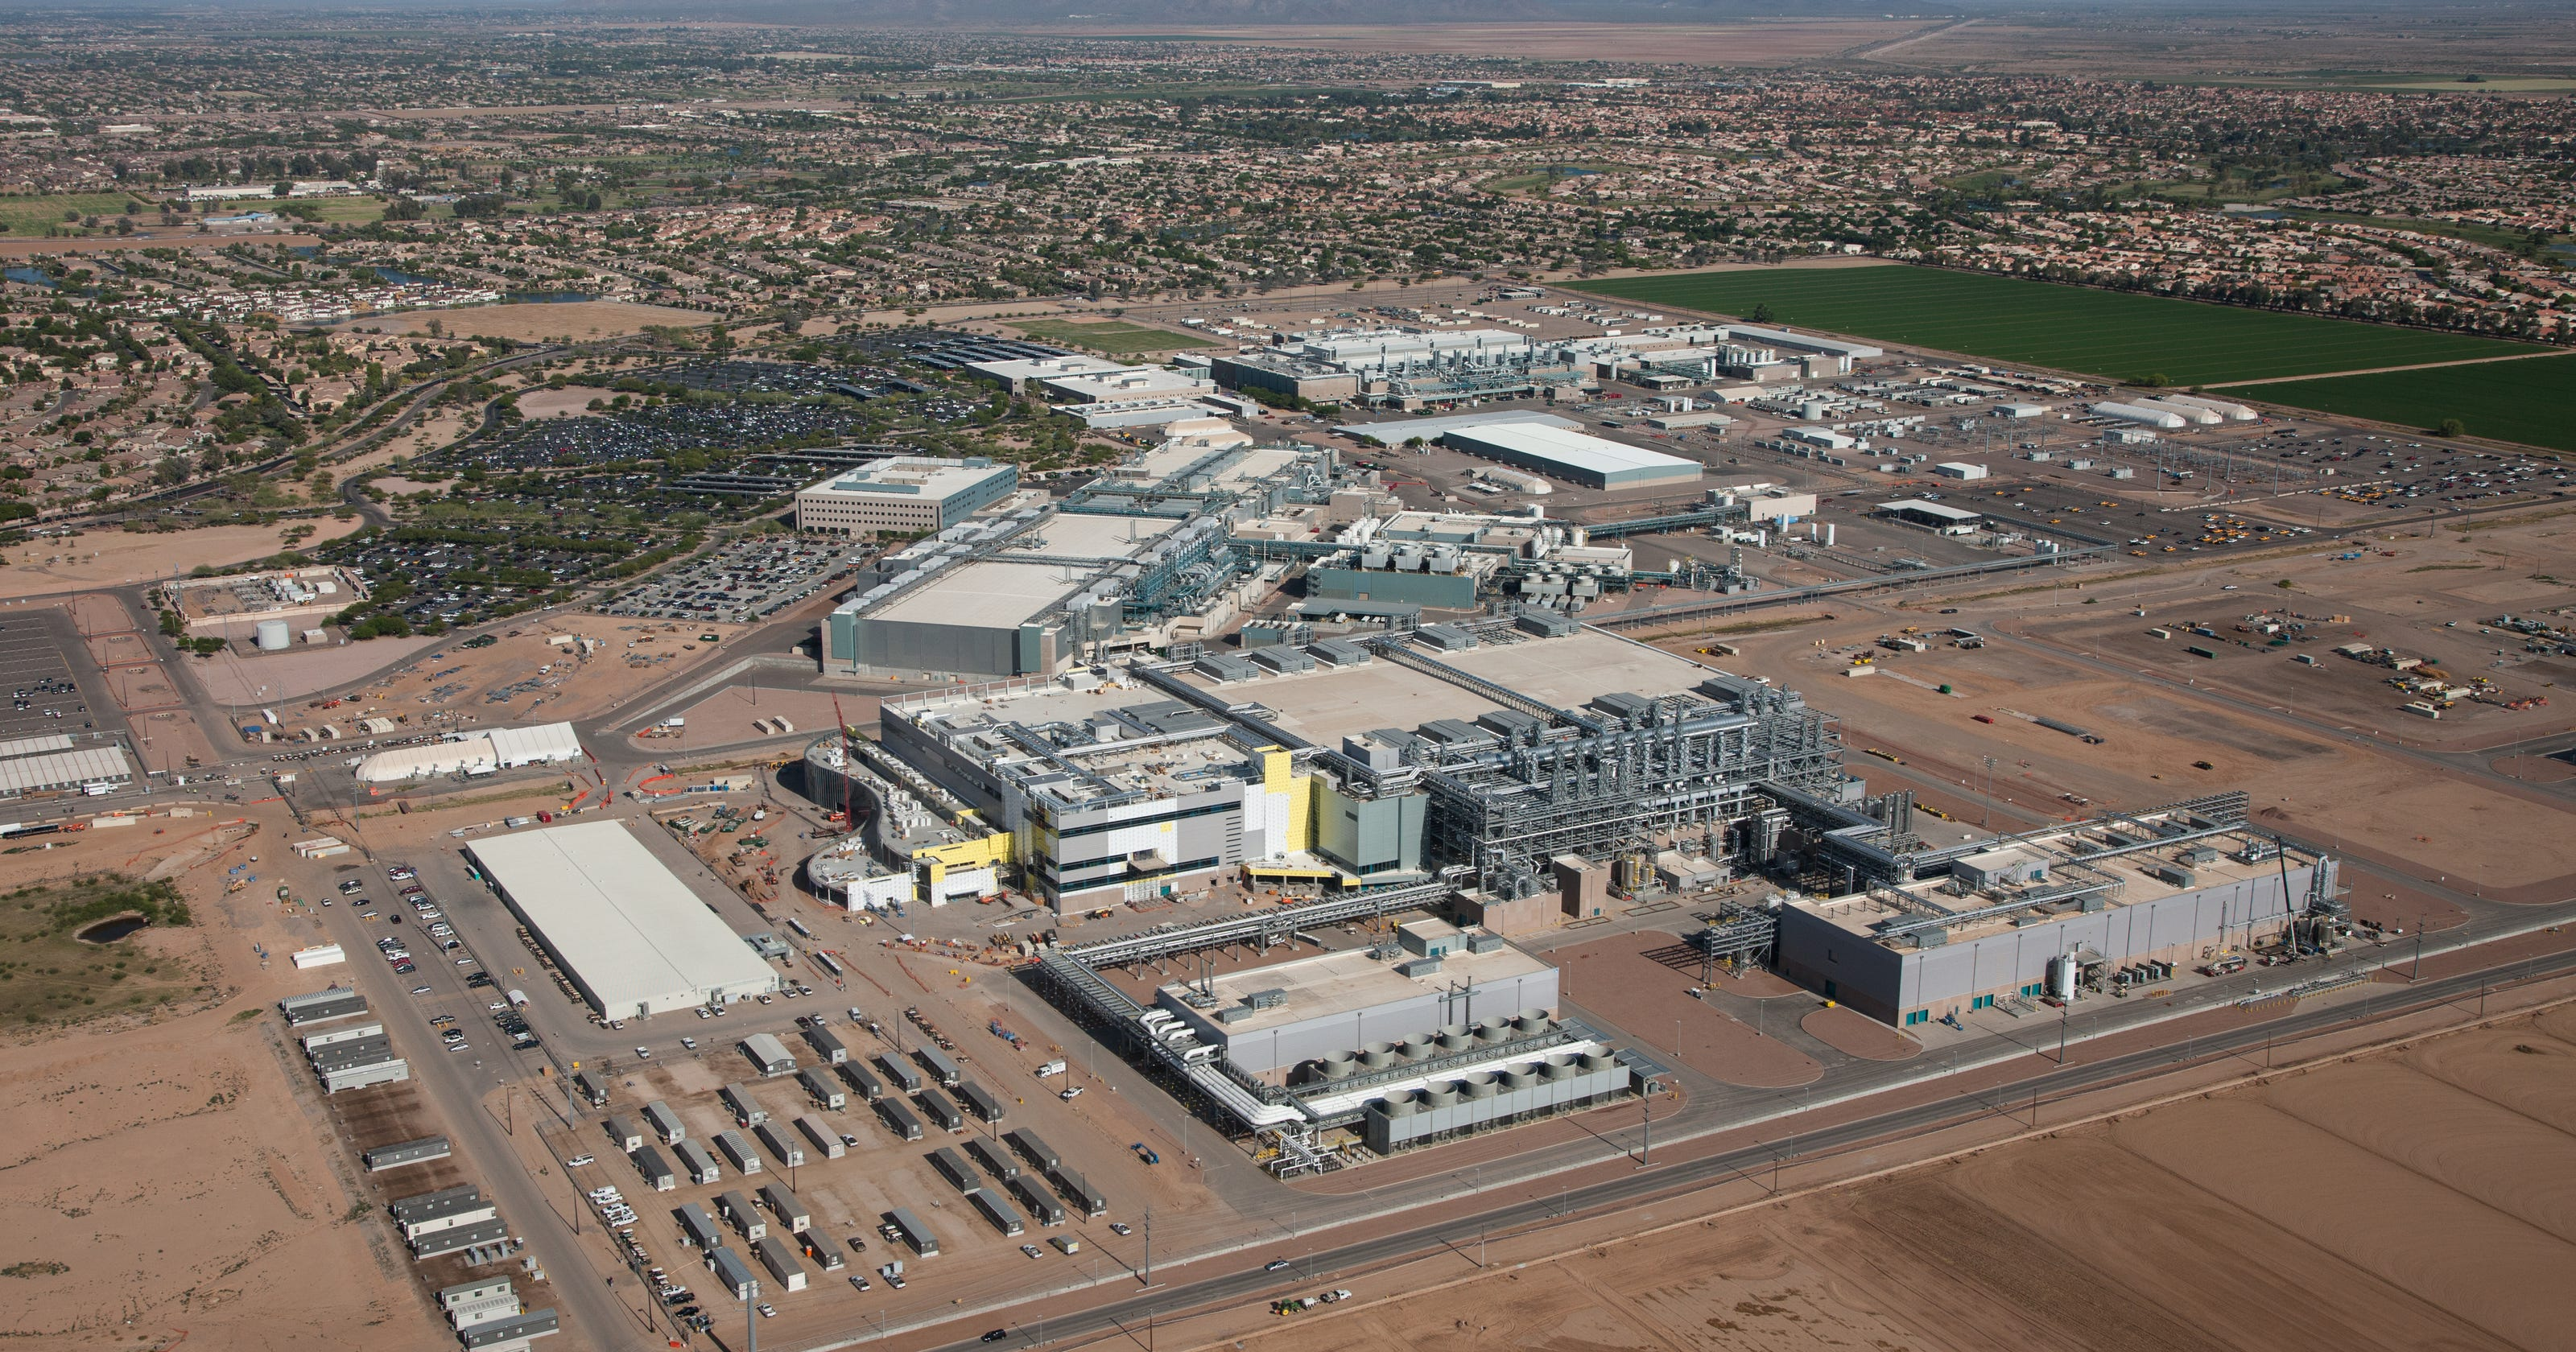 Intel says it's investing $7B in Chandler facility, bringing